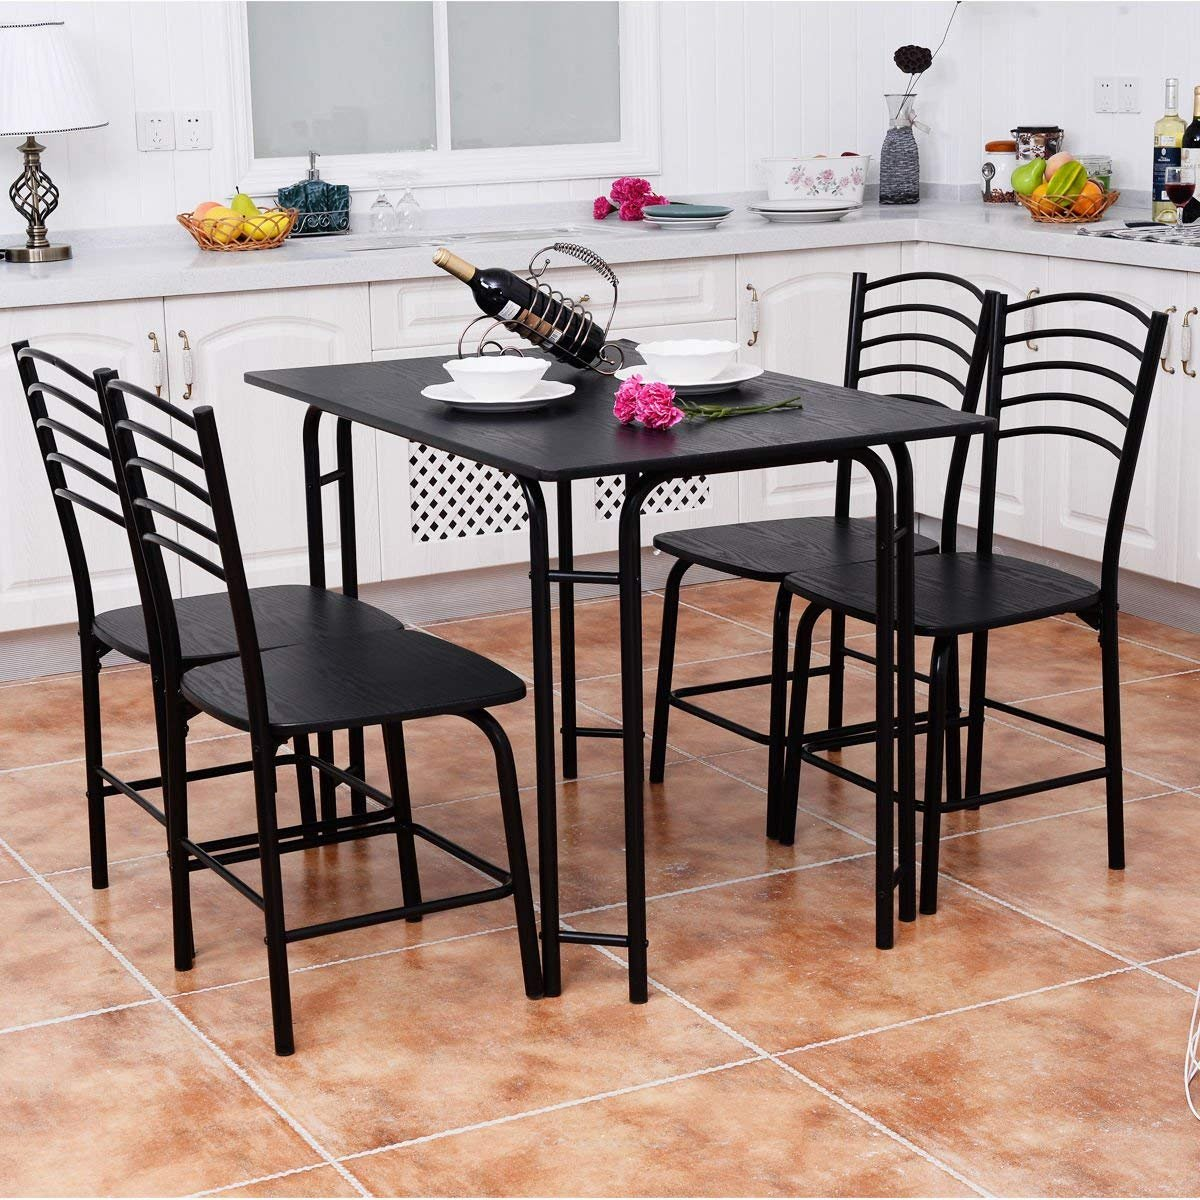 Giantex 5 PCS Dining Table And Chairs Set, Wood Metal Dining Room Breakfast Furniture Rectangular Table with 4 Chairs, Black (Style 2)